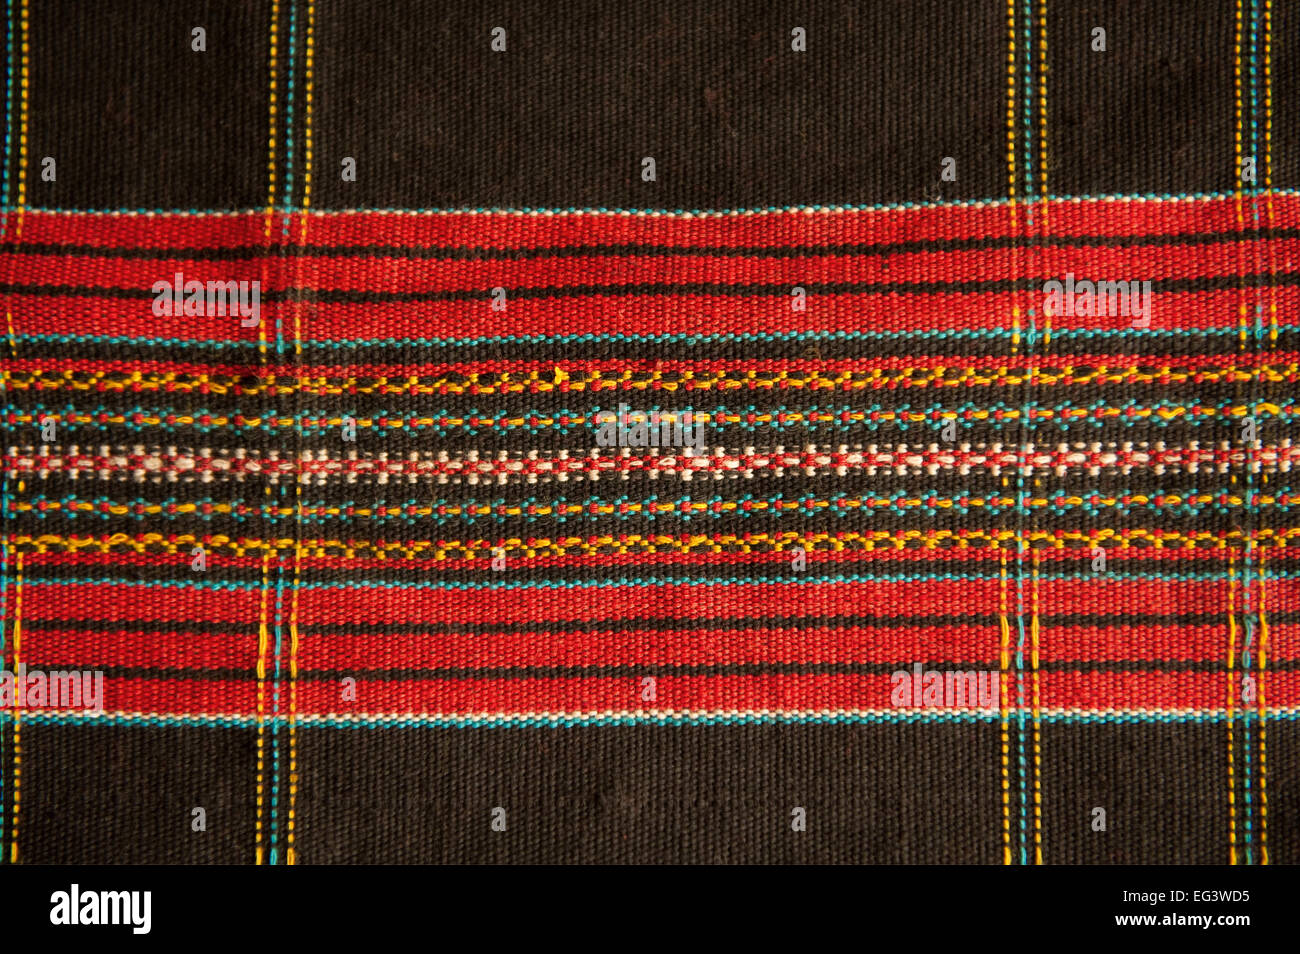 ABSTRACT MOTIF PATTERN FROM ANTIQUE TRADITIONAL TEXTILE - Stock Image